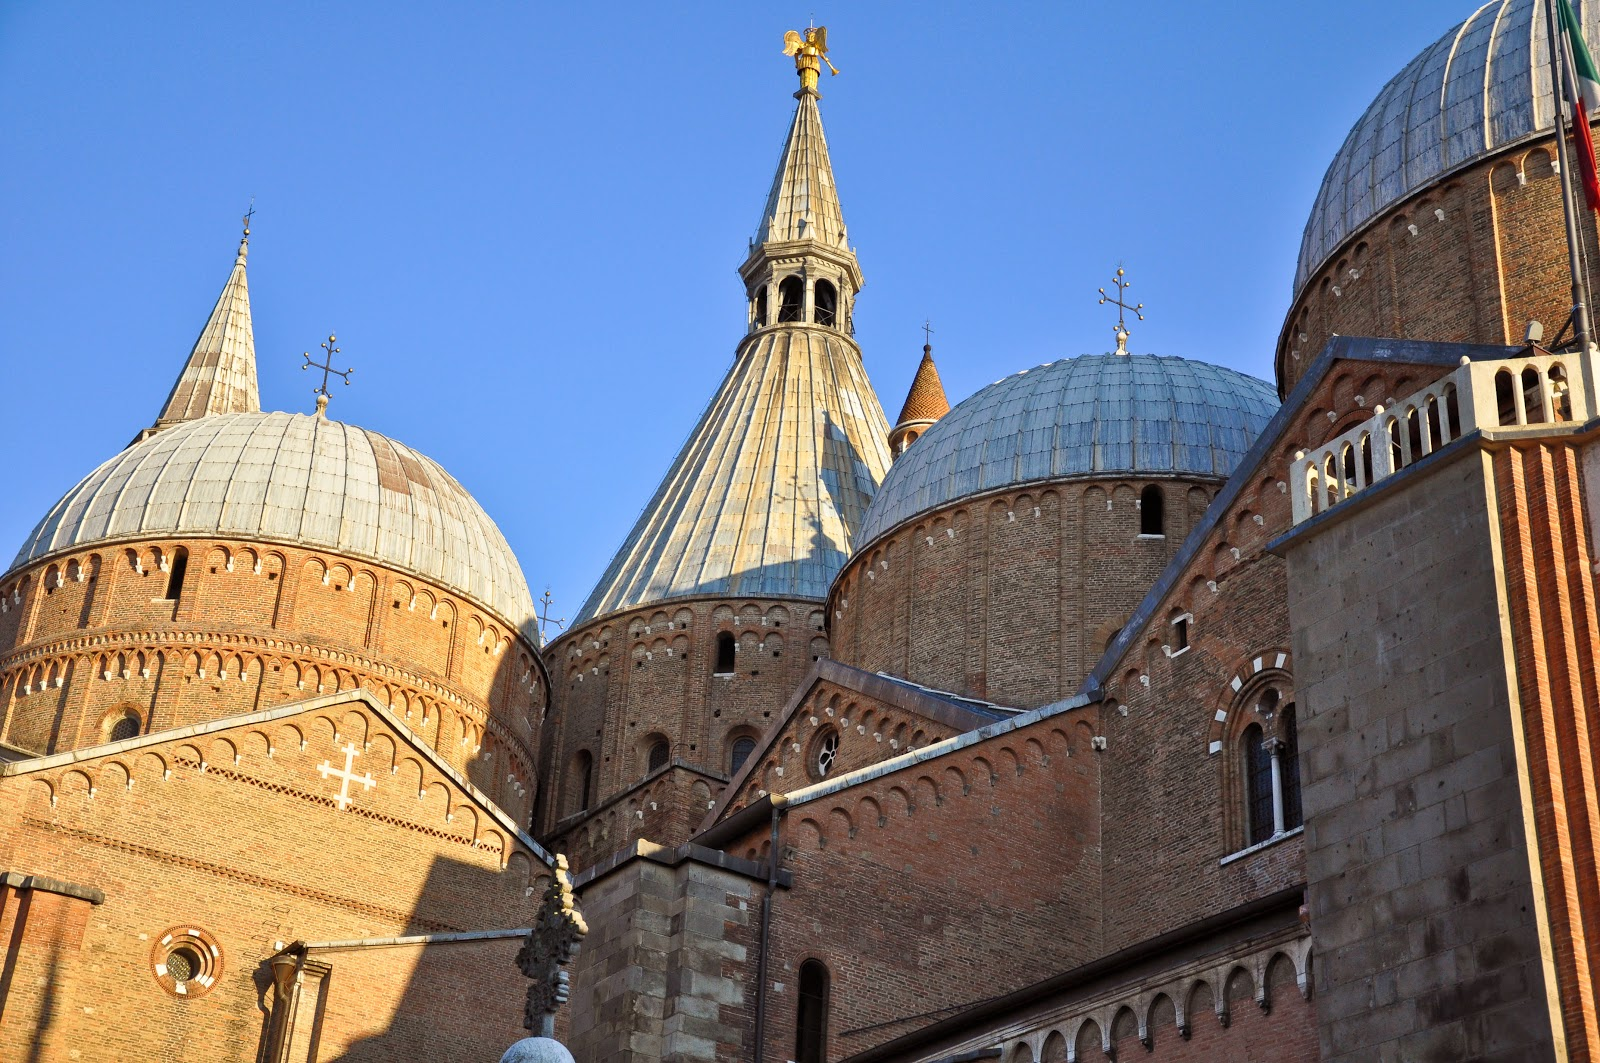 The domes of the Basilica of Saint Anthony in Padua, Italy